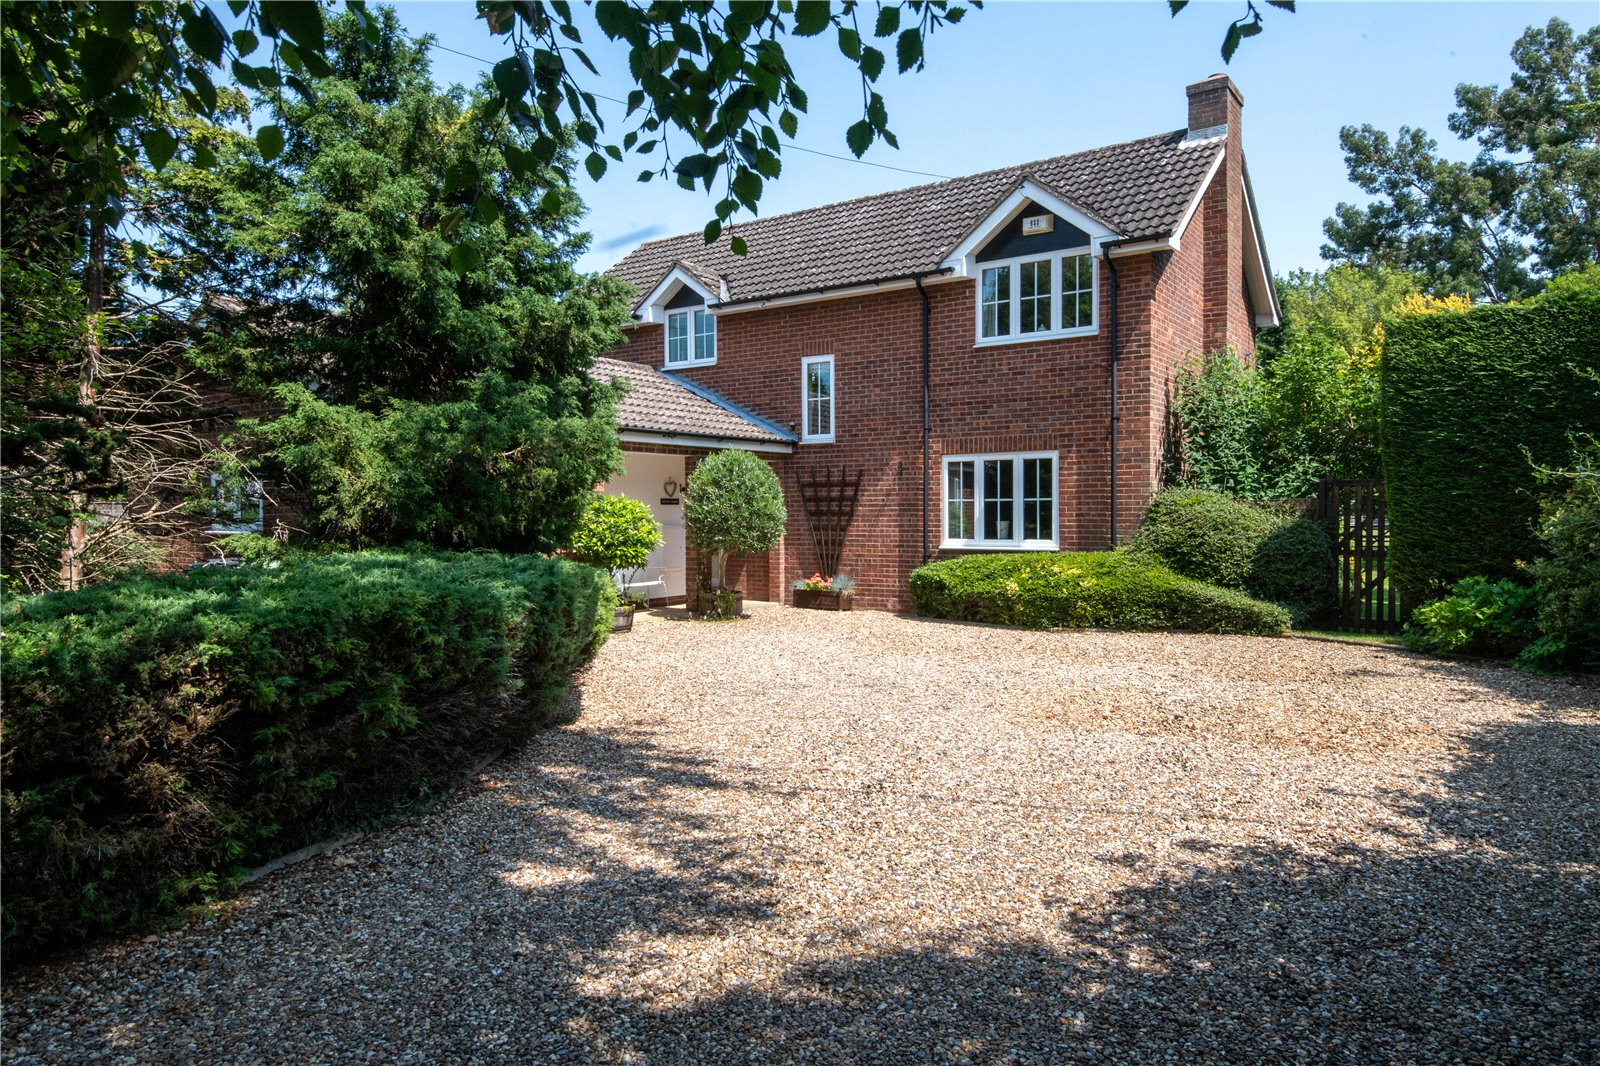 5 bed house for sale in Wyboston, MK44 3AX, MK44